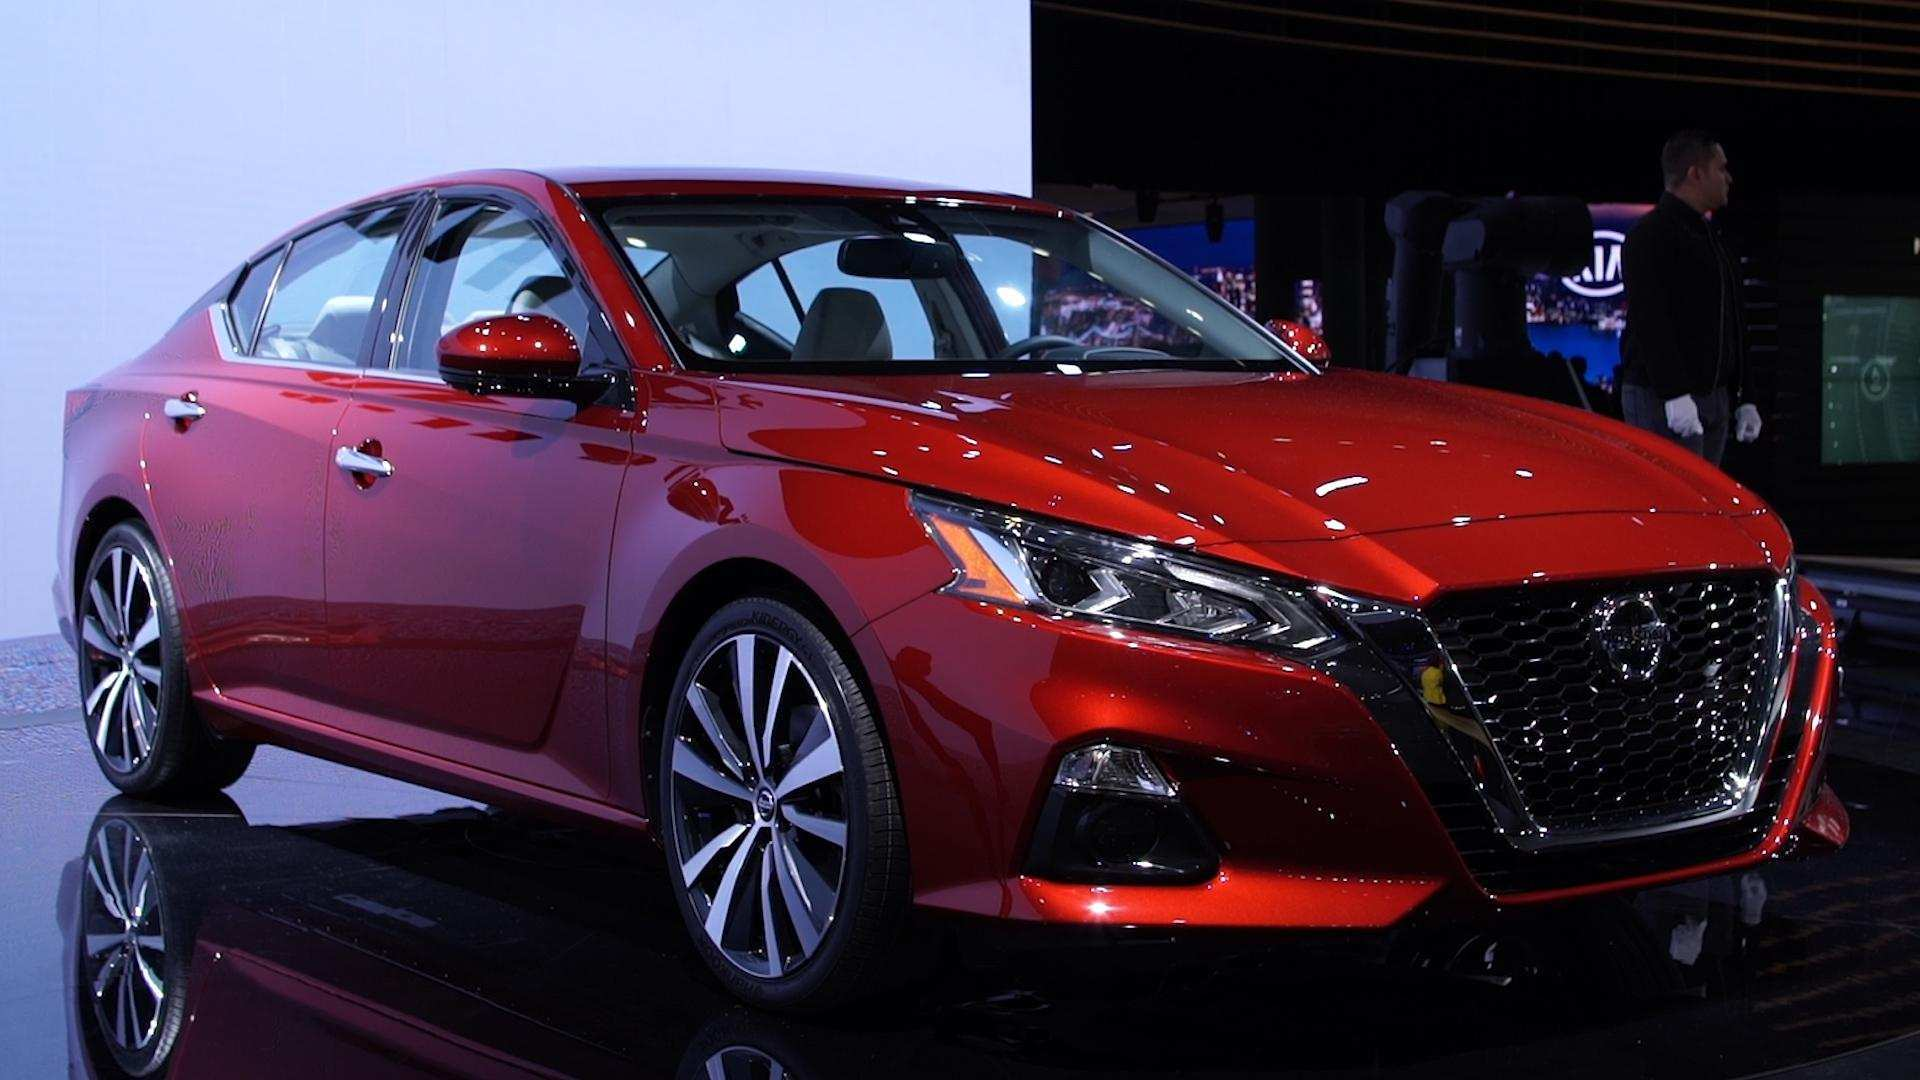 46 New Nissan Altima 2019 Horsepower Price Design And Review